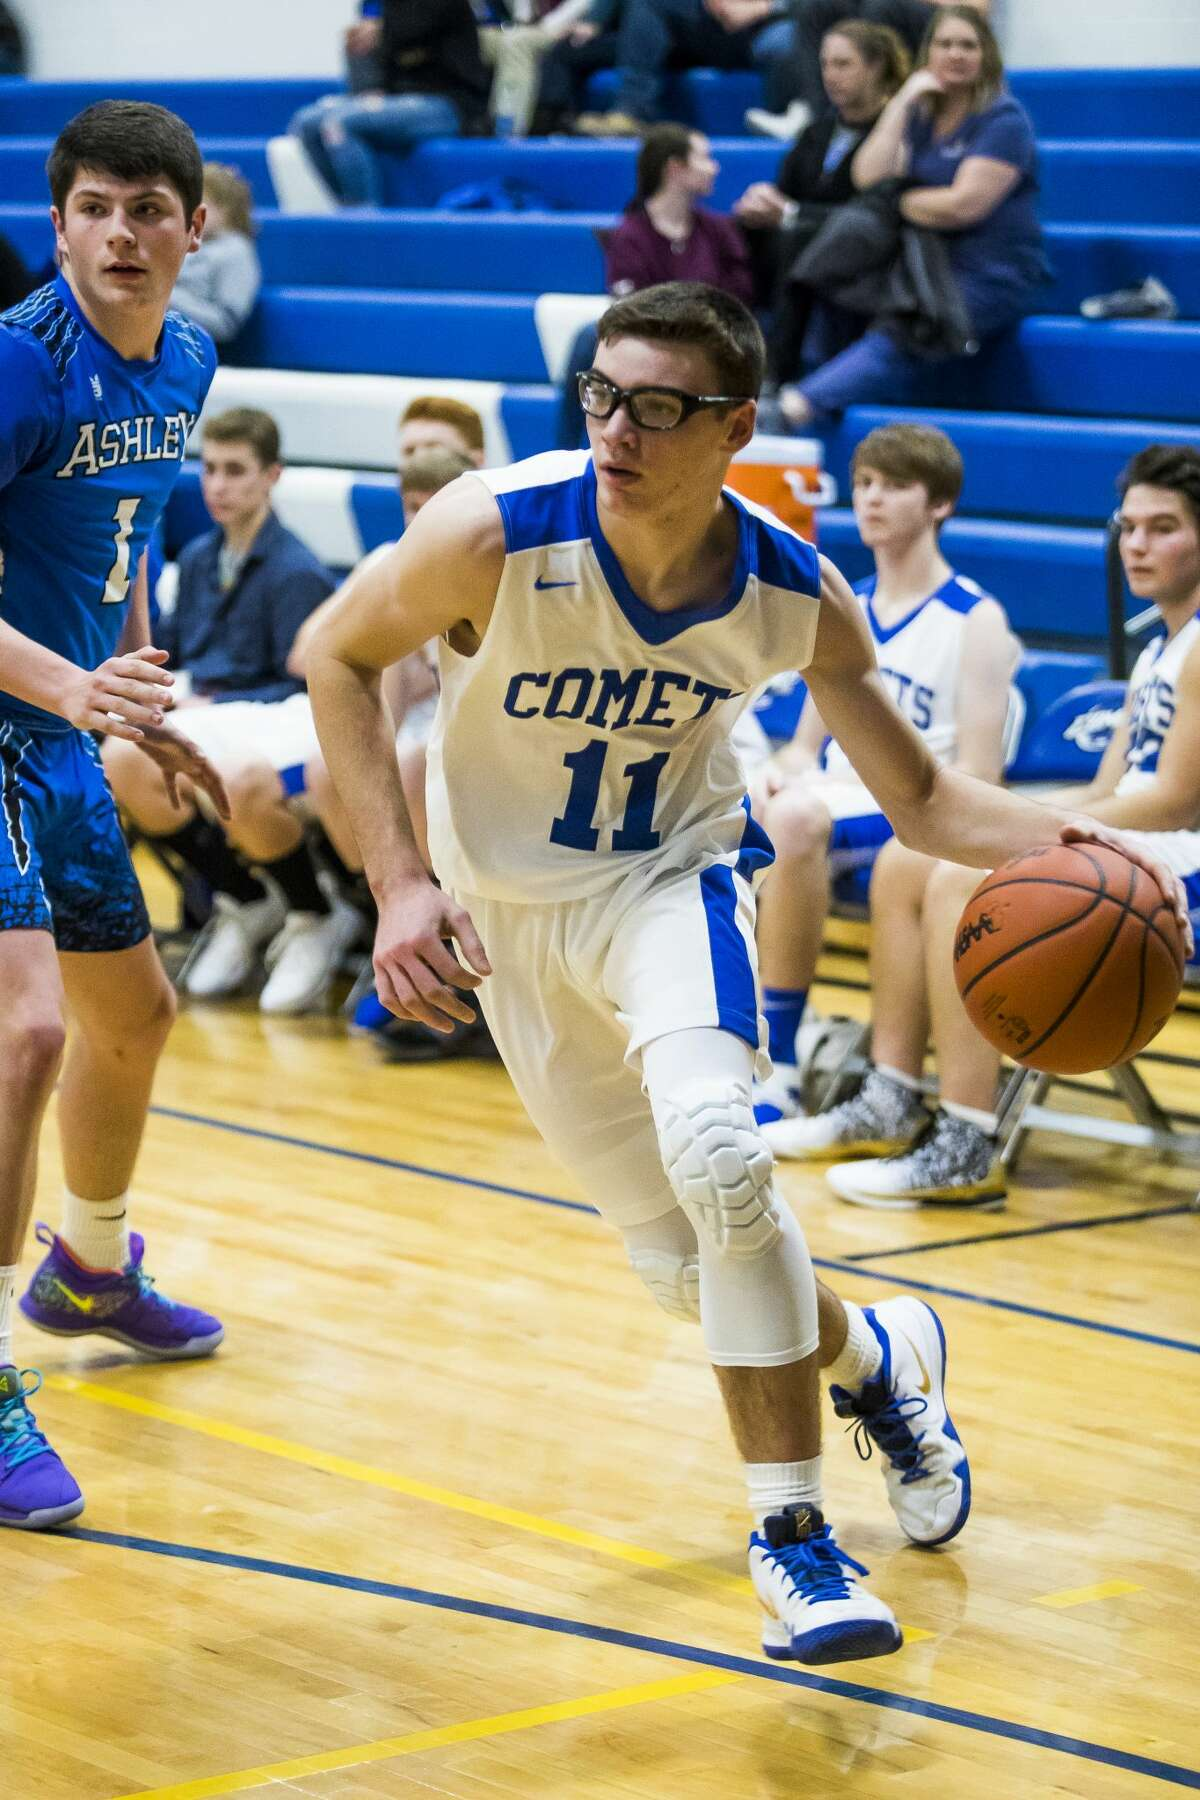 Coleman junior Connor Arnold dribbles toward the basket during a game against Ashley on Thursday, Jan. 3, 2019 at Coleman High School. (Katy Kildee/kkildee@mdn.net)